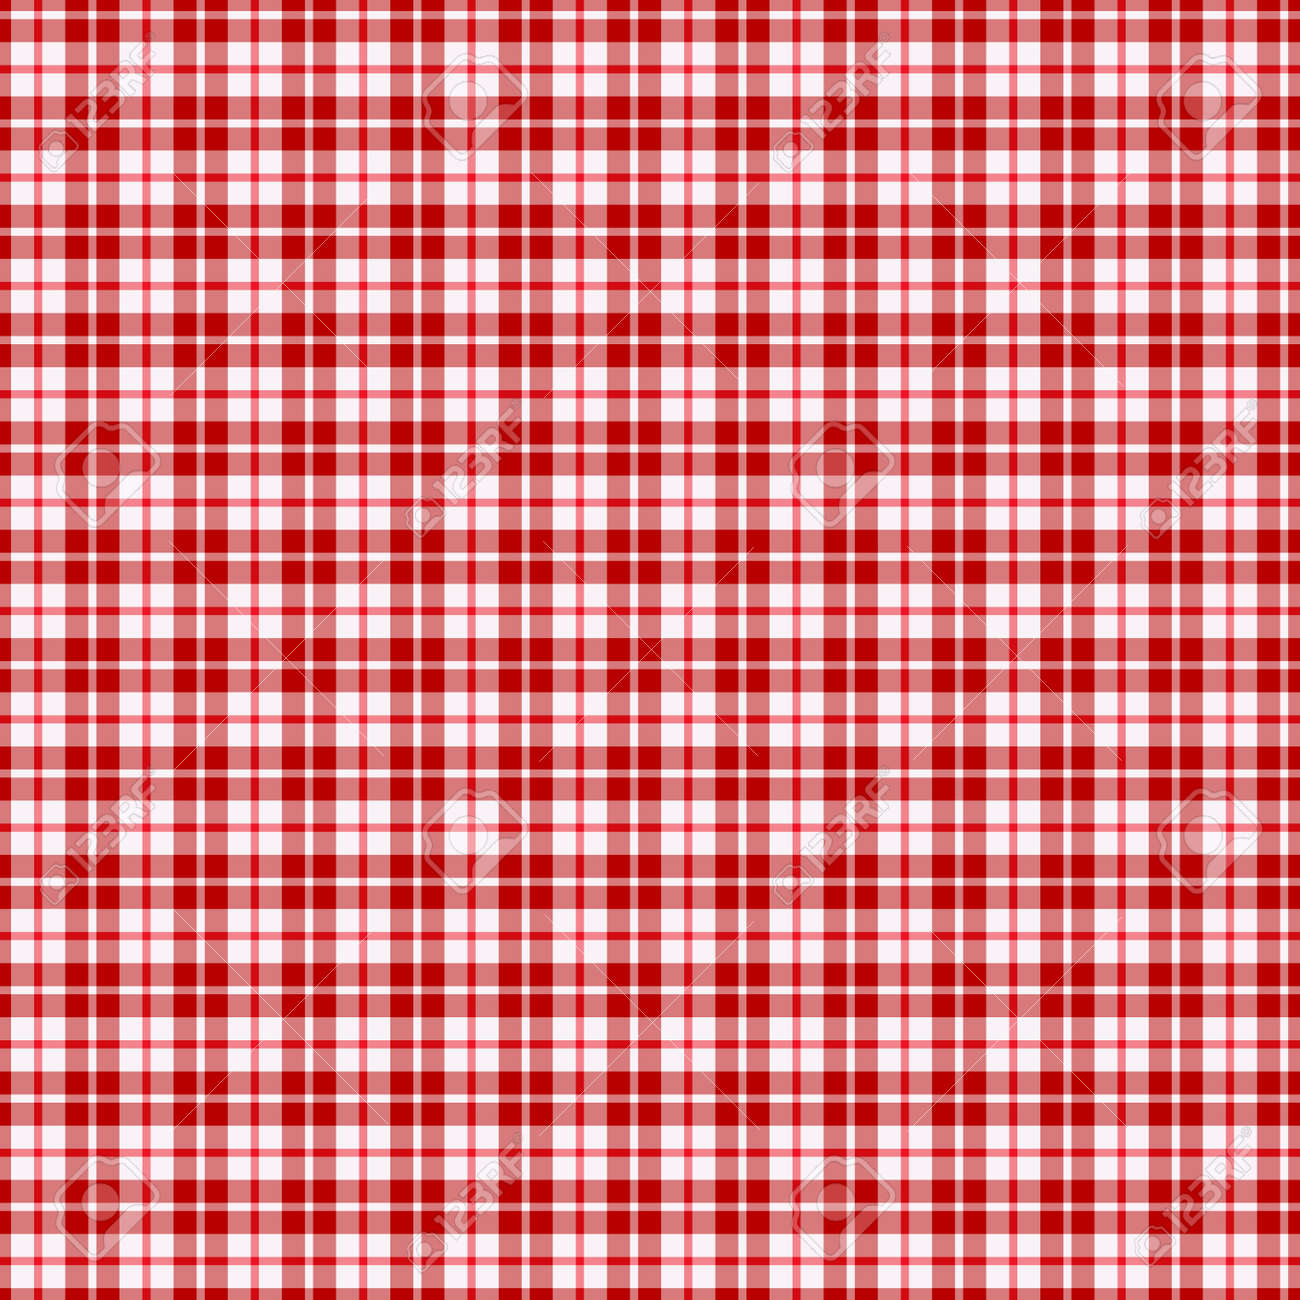 Tartan plaid pattern background. Texture for plaid, tablecloths, clothes, shirts, dresses, paper, bedding, blankets, quilts and other textile products. Vector illustration EPS 10 - 158348455